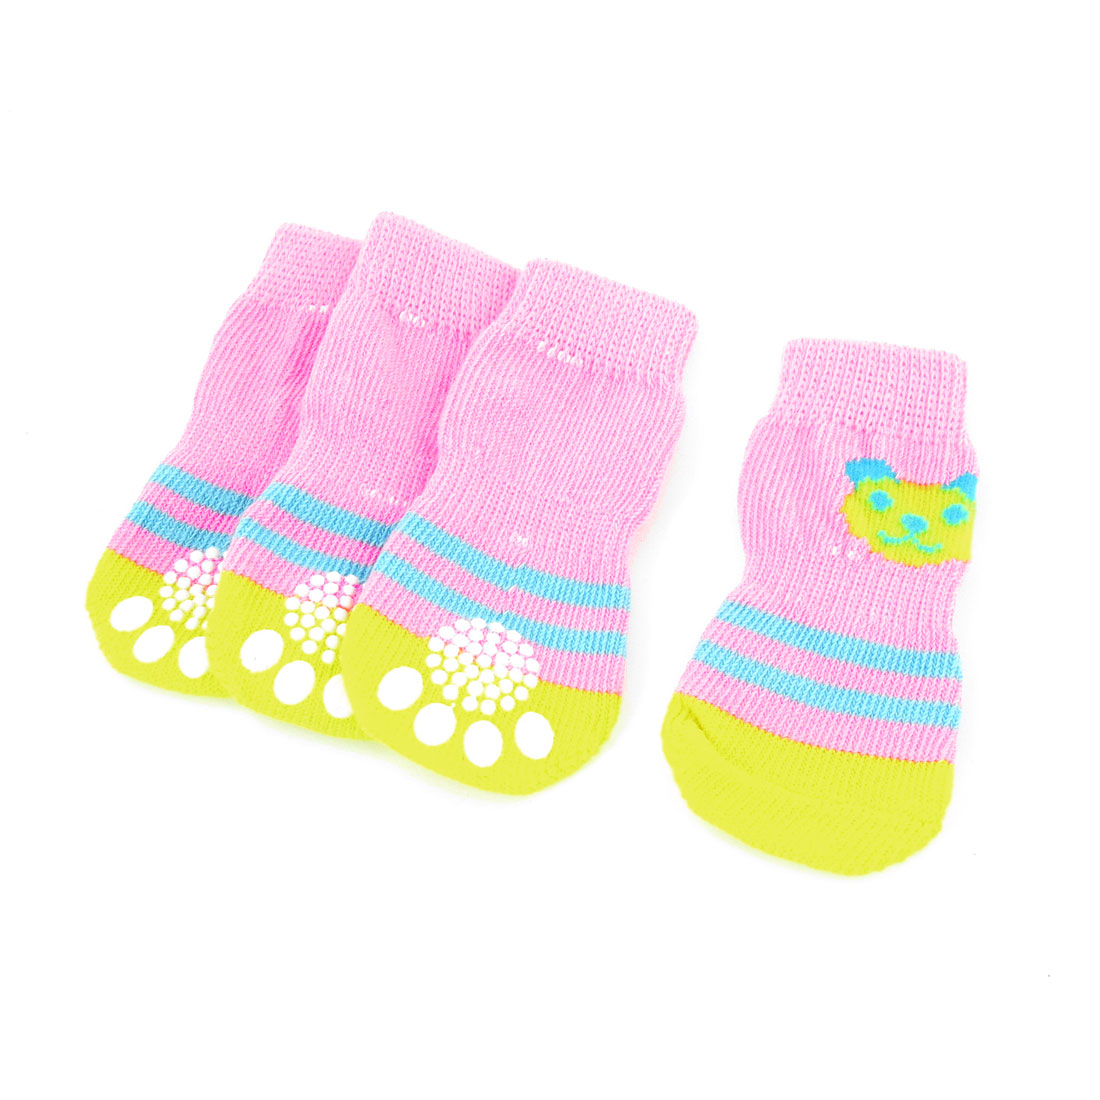 2 Pairs Anti Slip Design Stretchy Knitted Pet Dog Doggie Socks Pink Yellow L - image 1 of 1